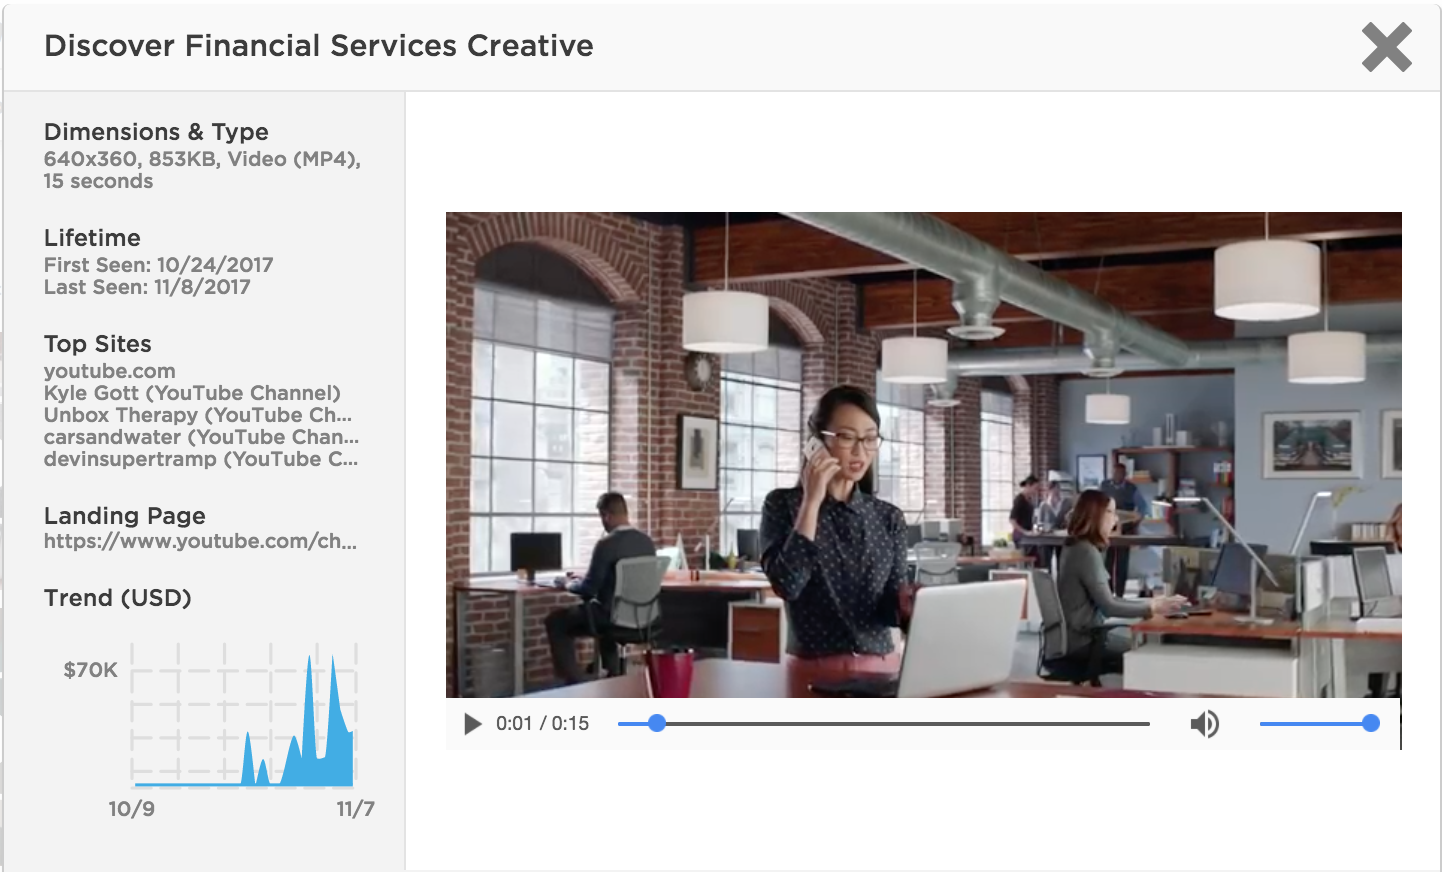 Brand of the Week: Discover Financial Services - Featured Image